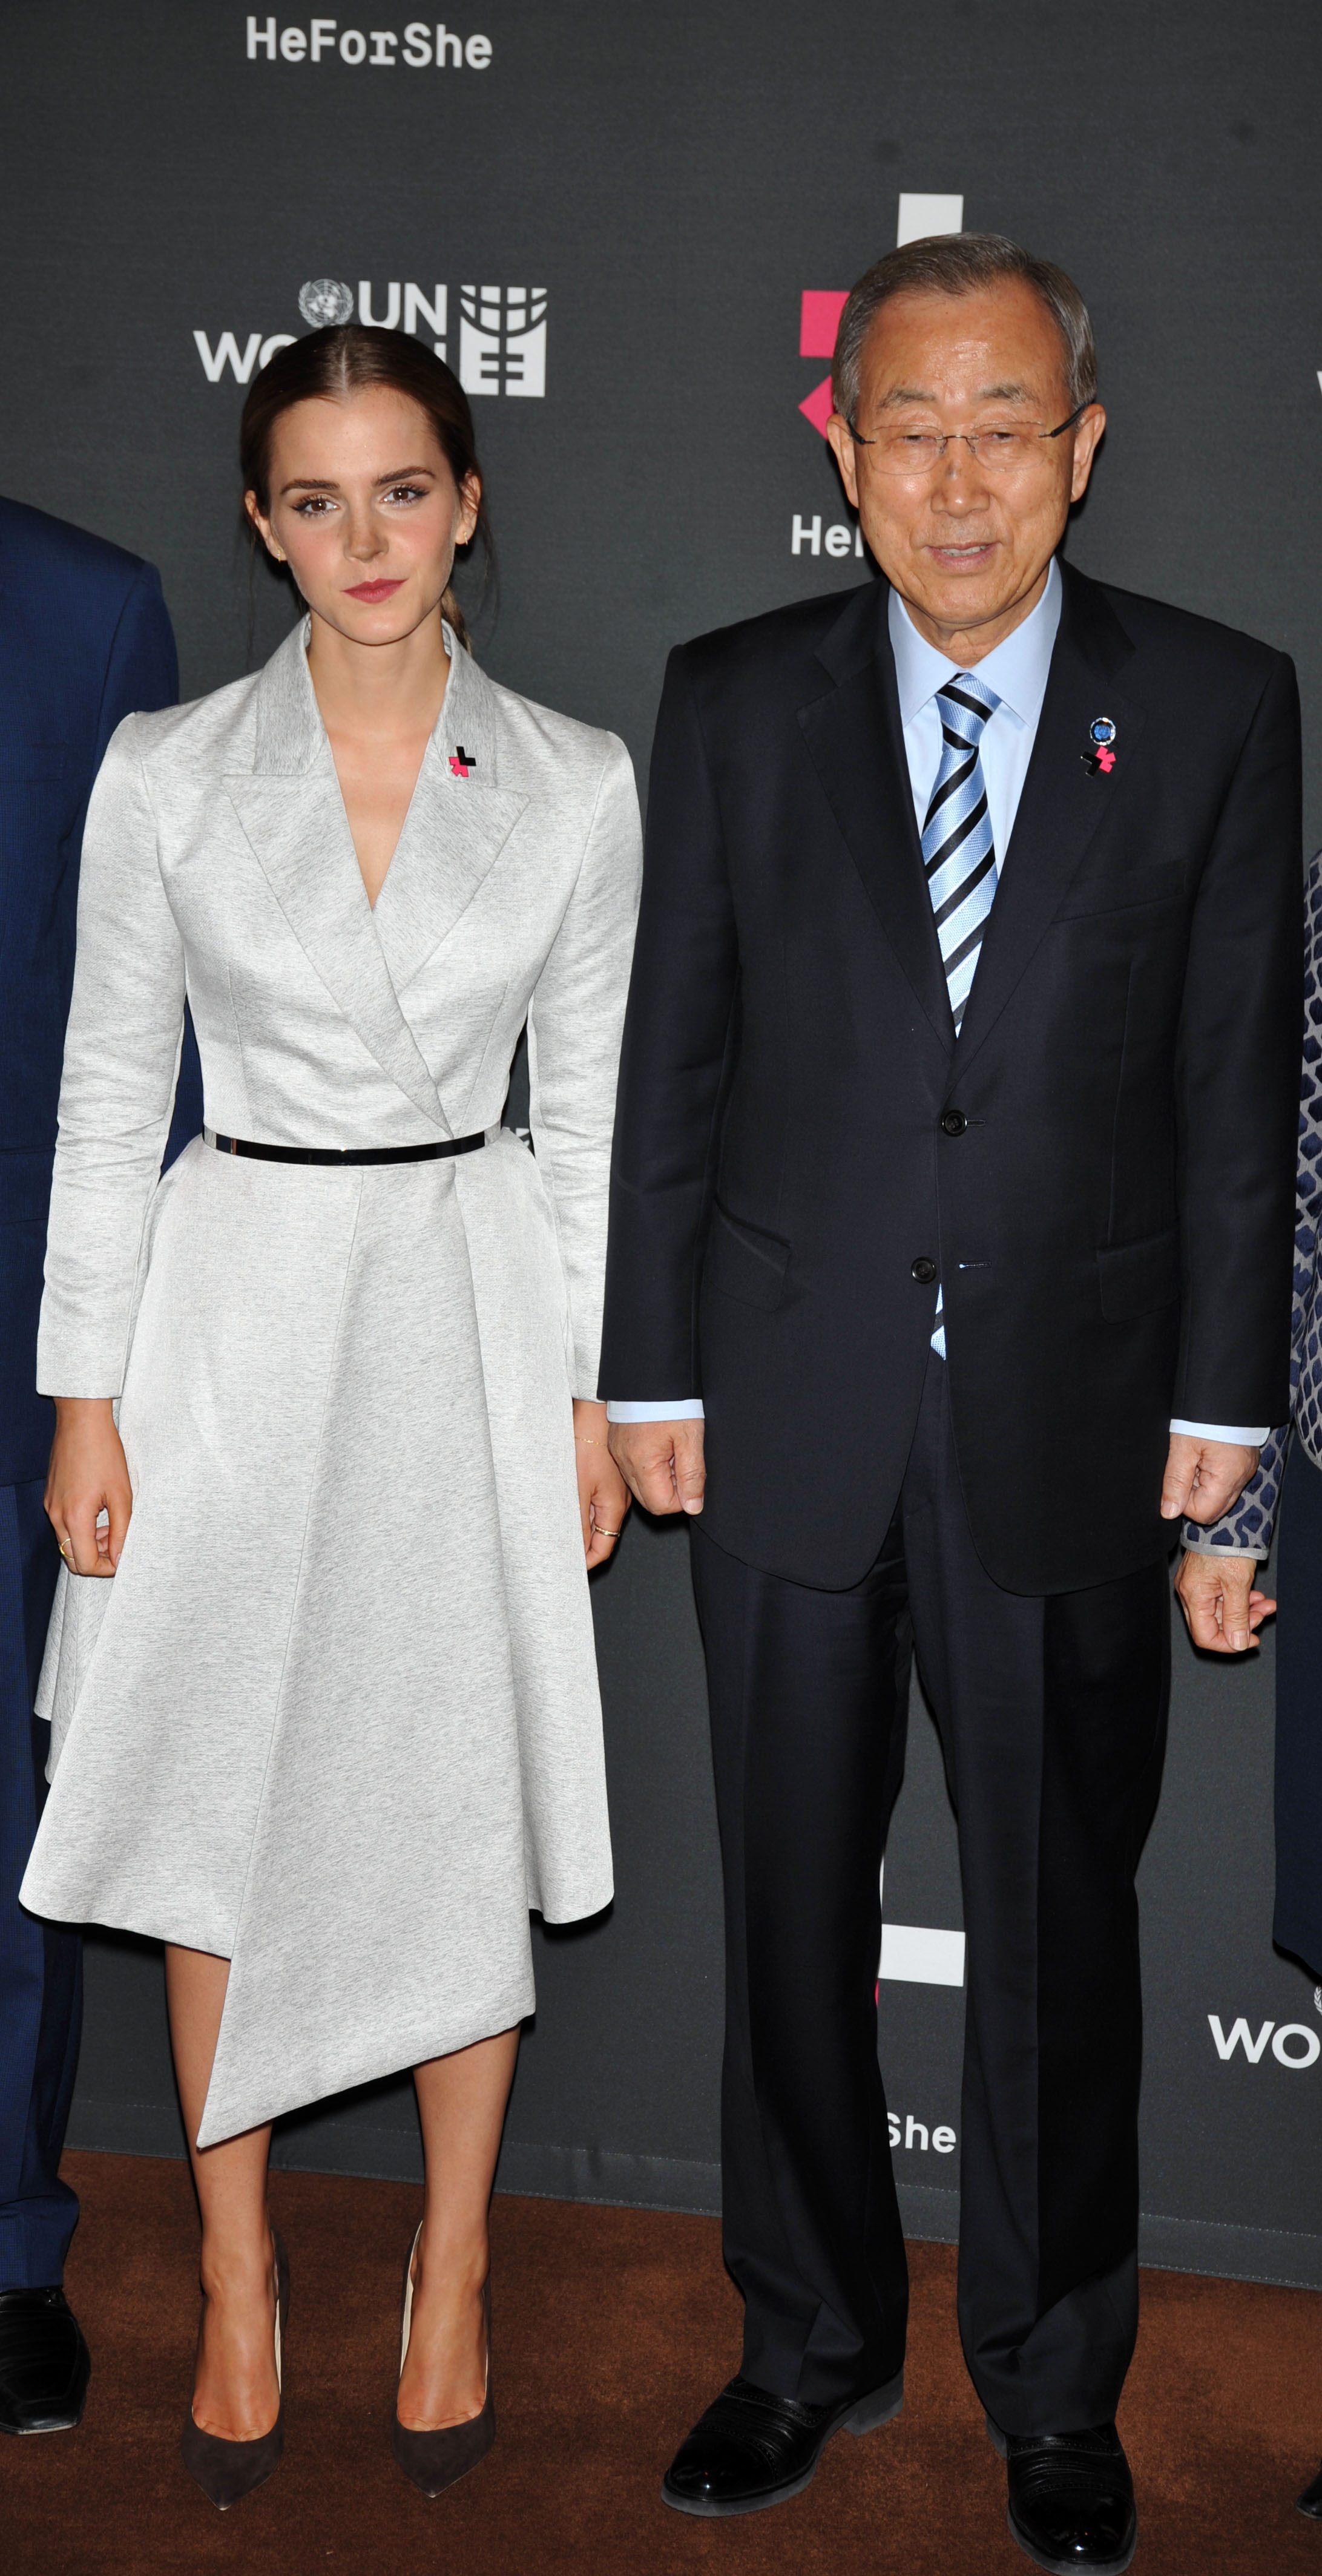 Emma Watson, Ban Ki-Moon attends the launch of the HeForShe Campaign at the United Nations on September 20, 2014 in New York City.  (Steve Sands--WireImage)